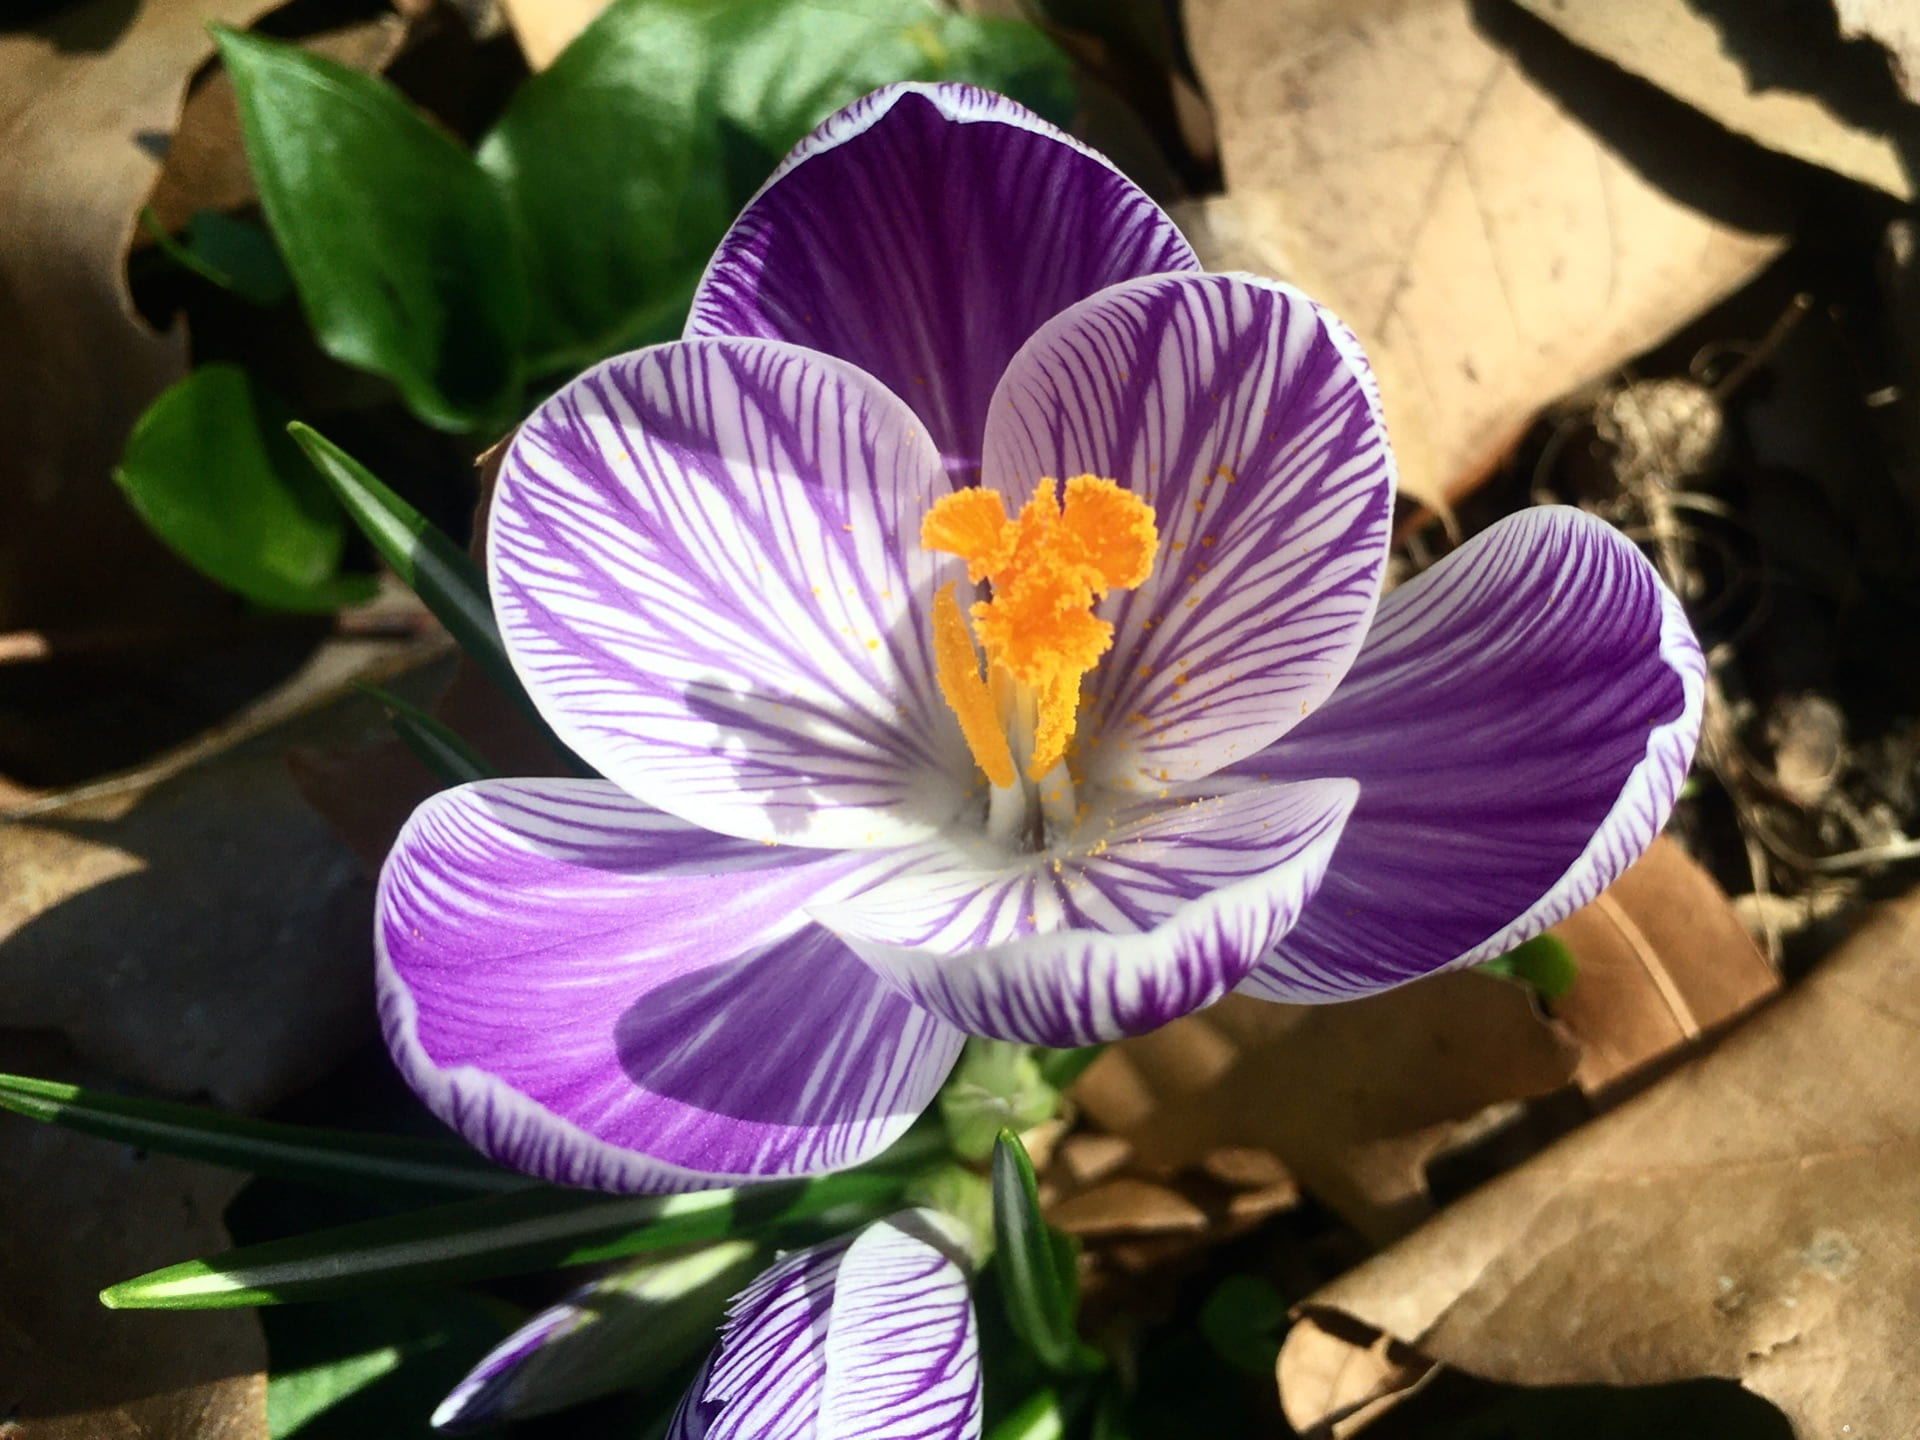 A detailed look at Crocus 'Pickwick'.